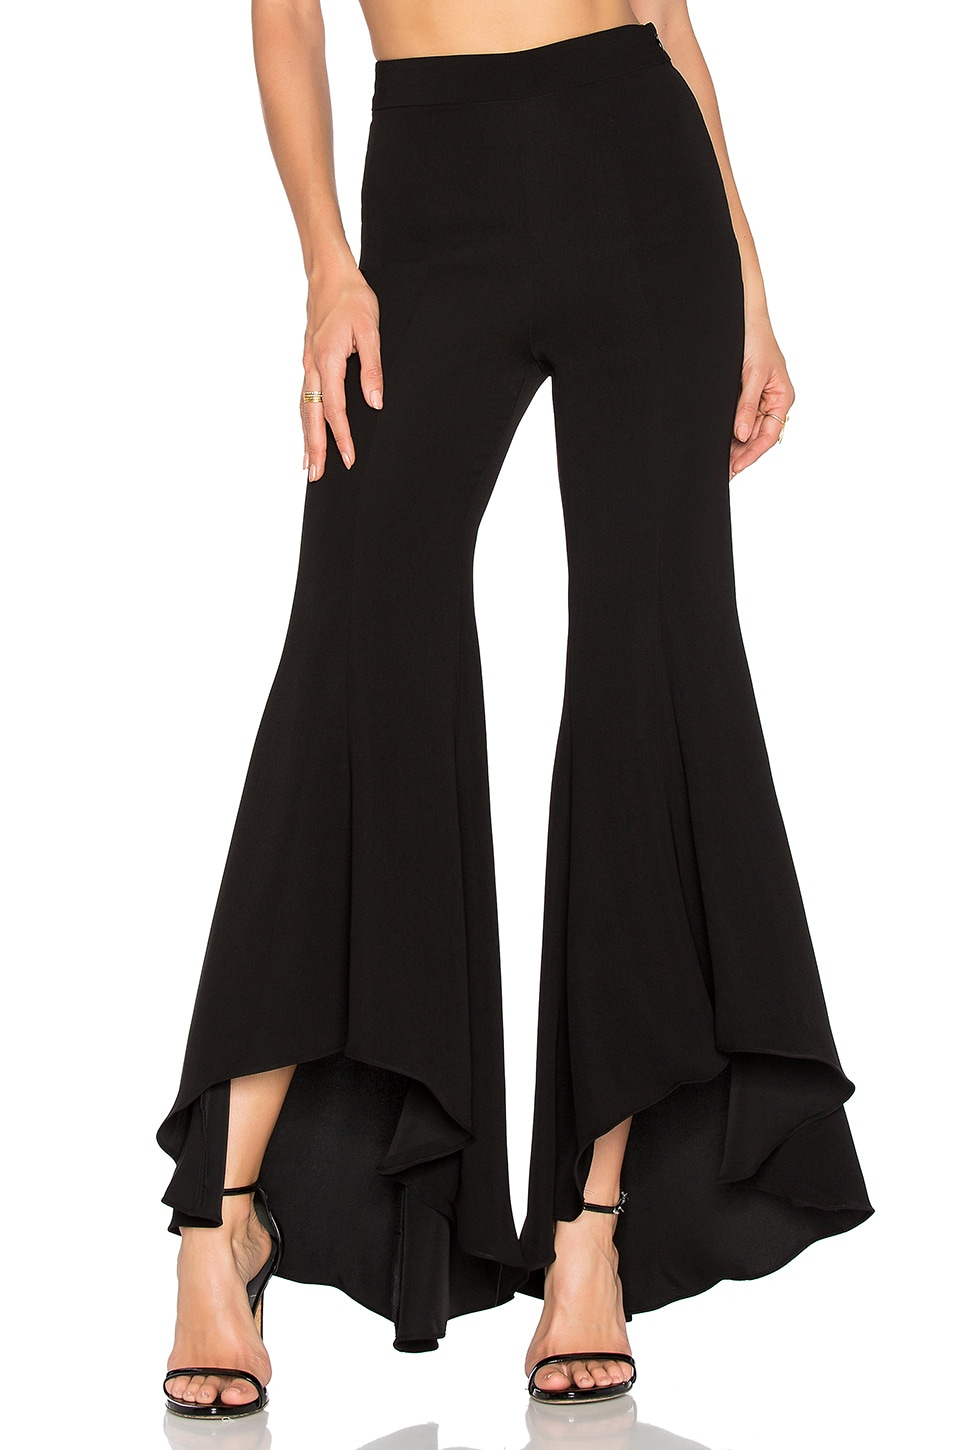 Lovers + Friends x REVOLVE Riley Pants in Black